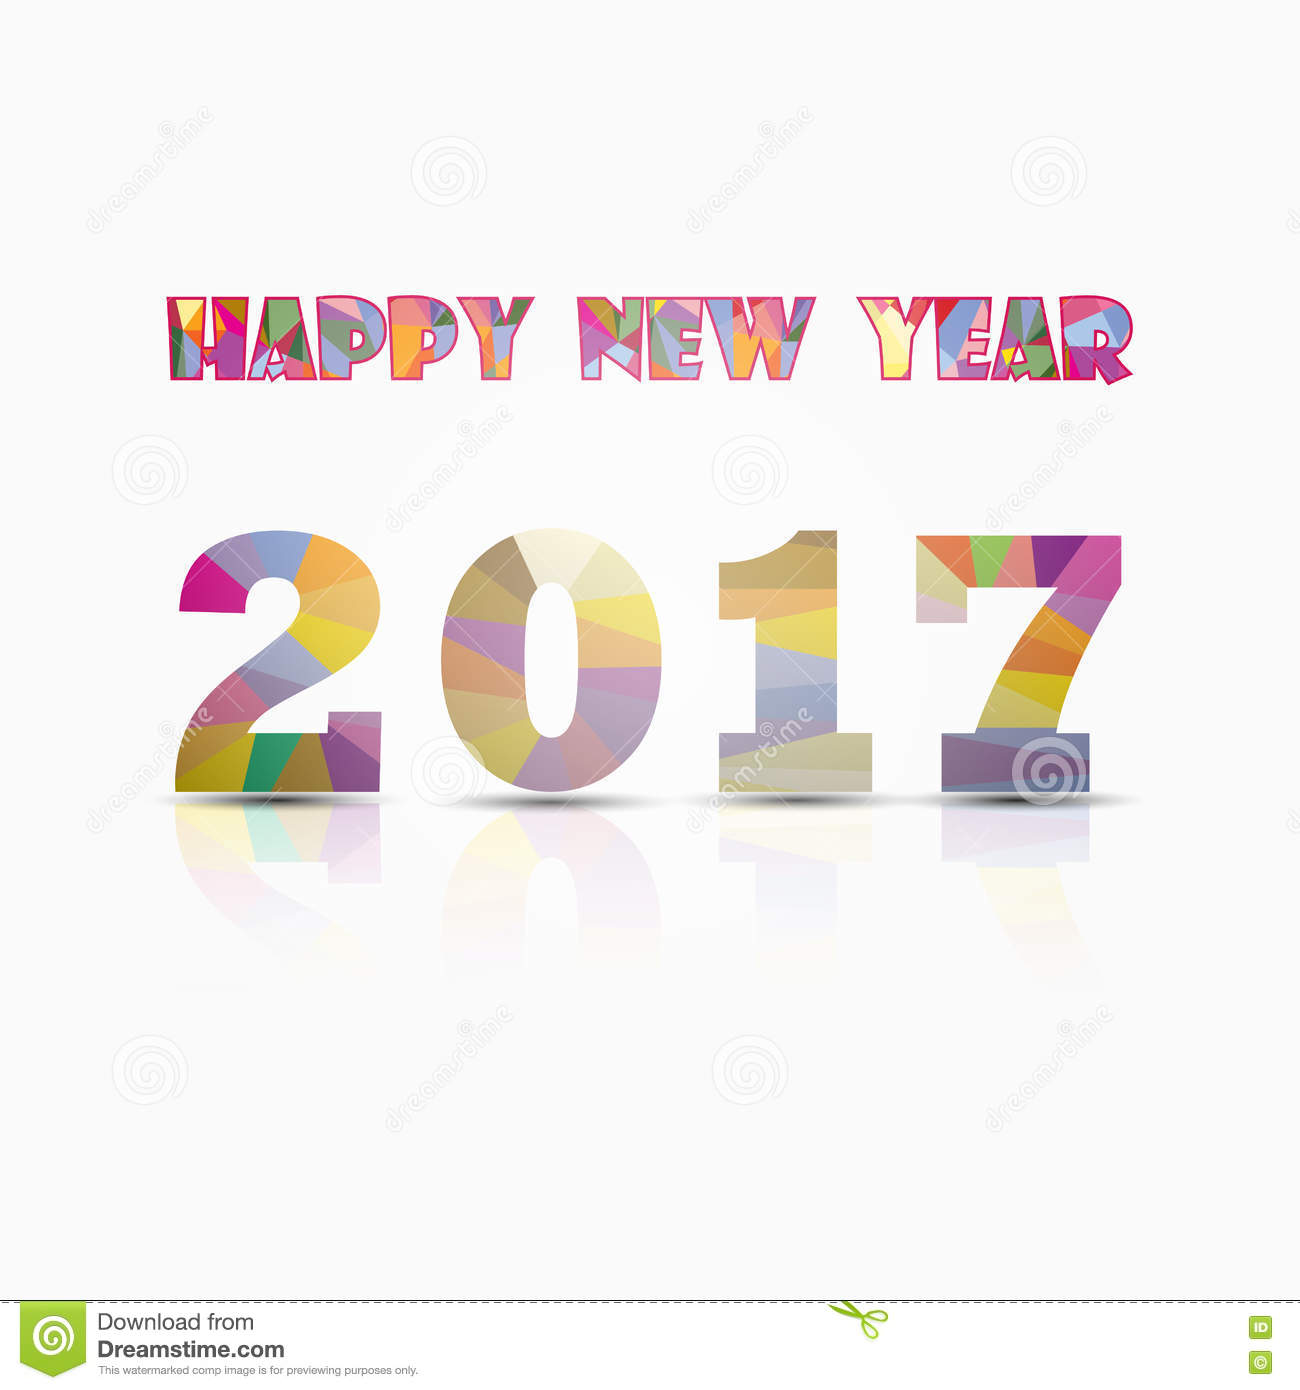 happy new year 2017 backgroundcolorful greeting card designvector illustration for holiday design party poster greeting card banner or invitation